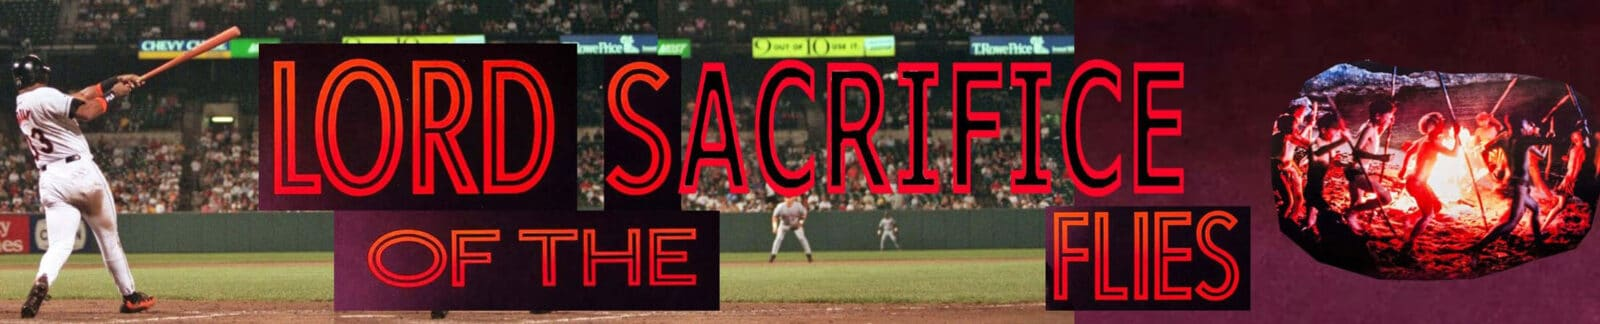 Lord of the Sacrifice Flies, baseball movie